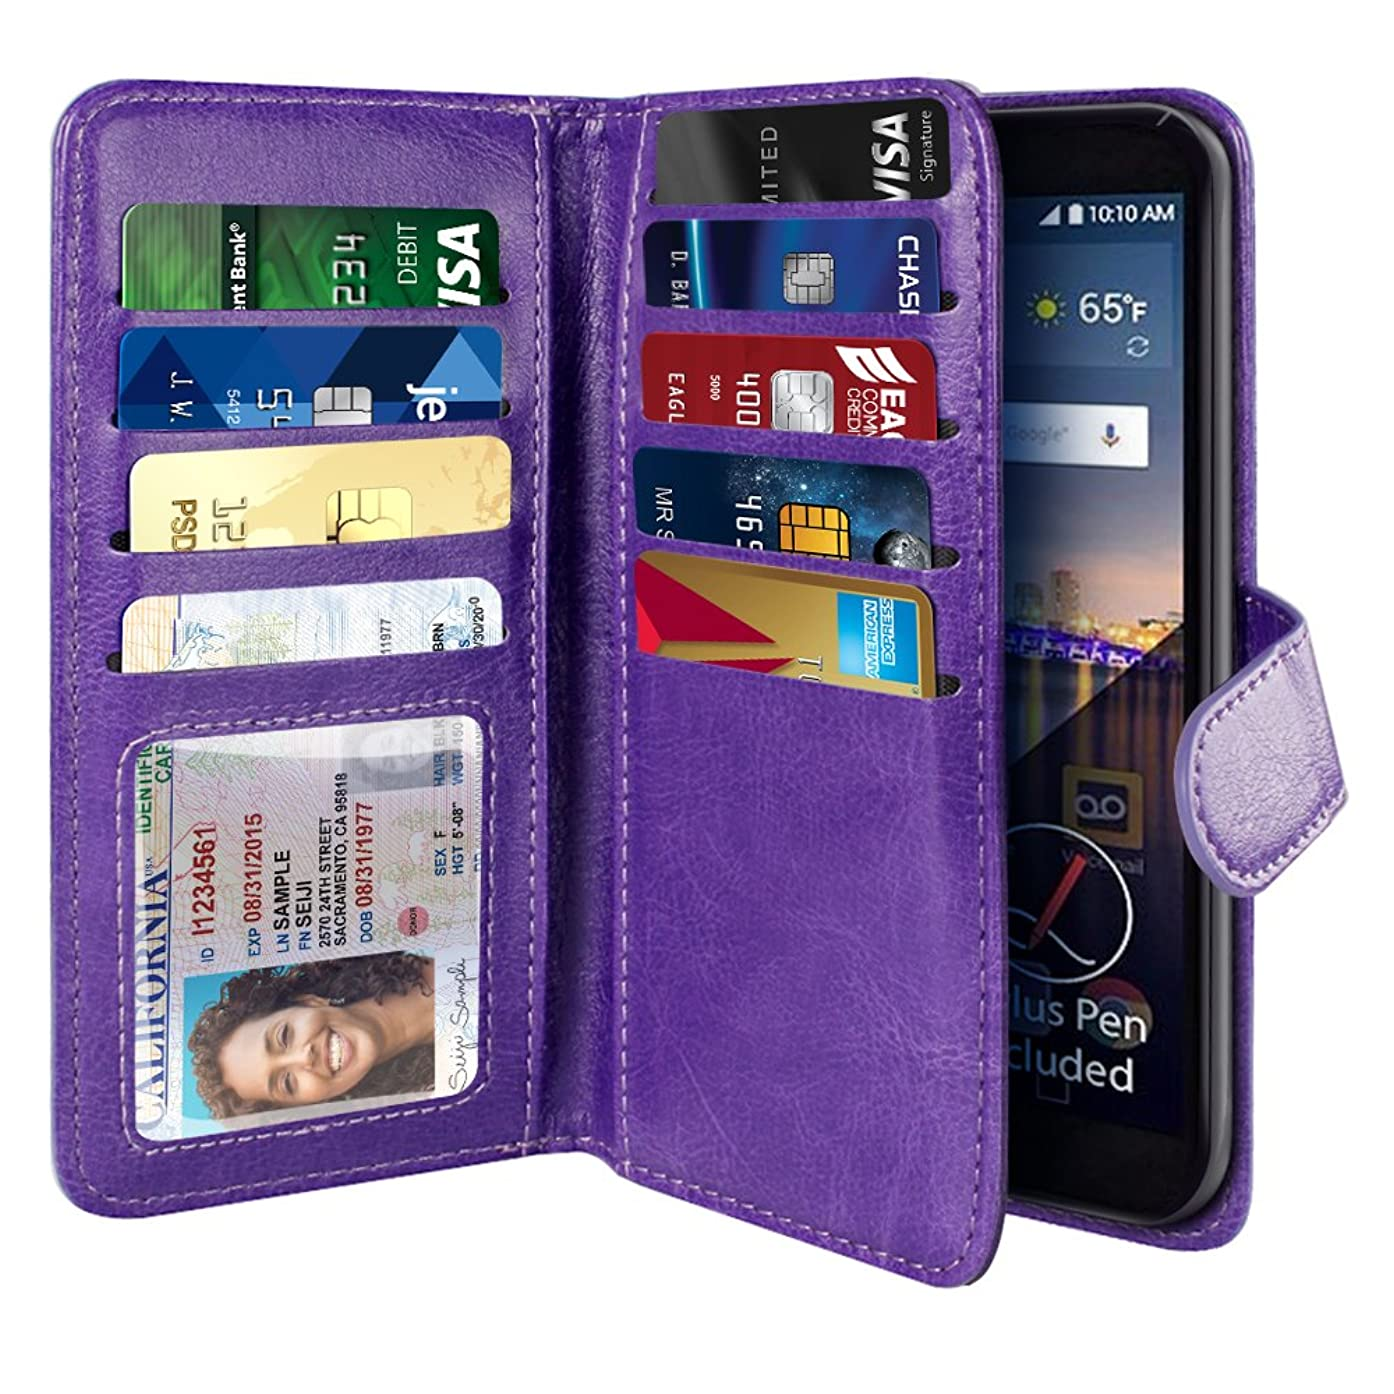 NEXTKIN LG Stylo 3 Stylus 3 Case, Leather Dual Wallet Folio TPU Cover, 2 Large Pockets Double flap Privacy, Multi Card Slots Snap Button Strap For LG Stylo 3 Stylus 3 LS777/Stylo 3 Plus - Purple